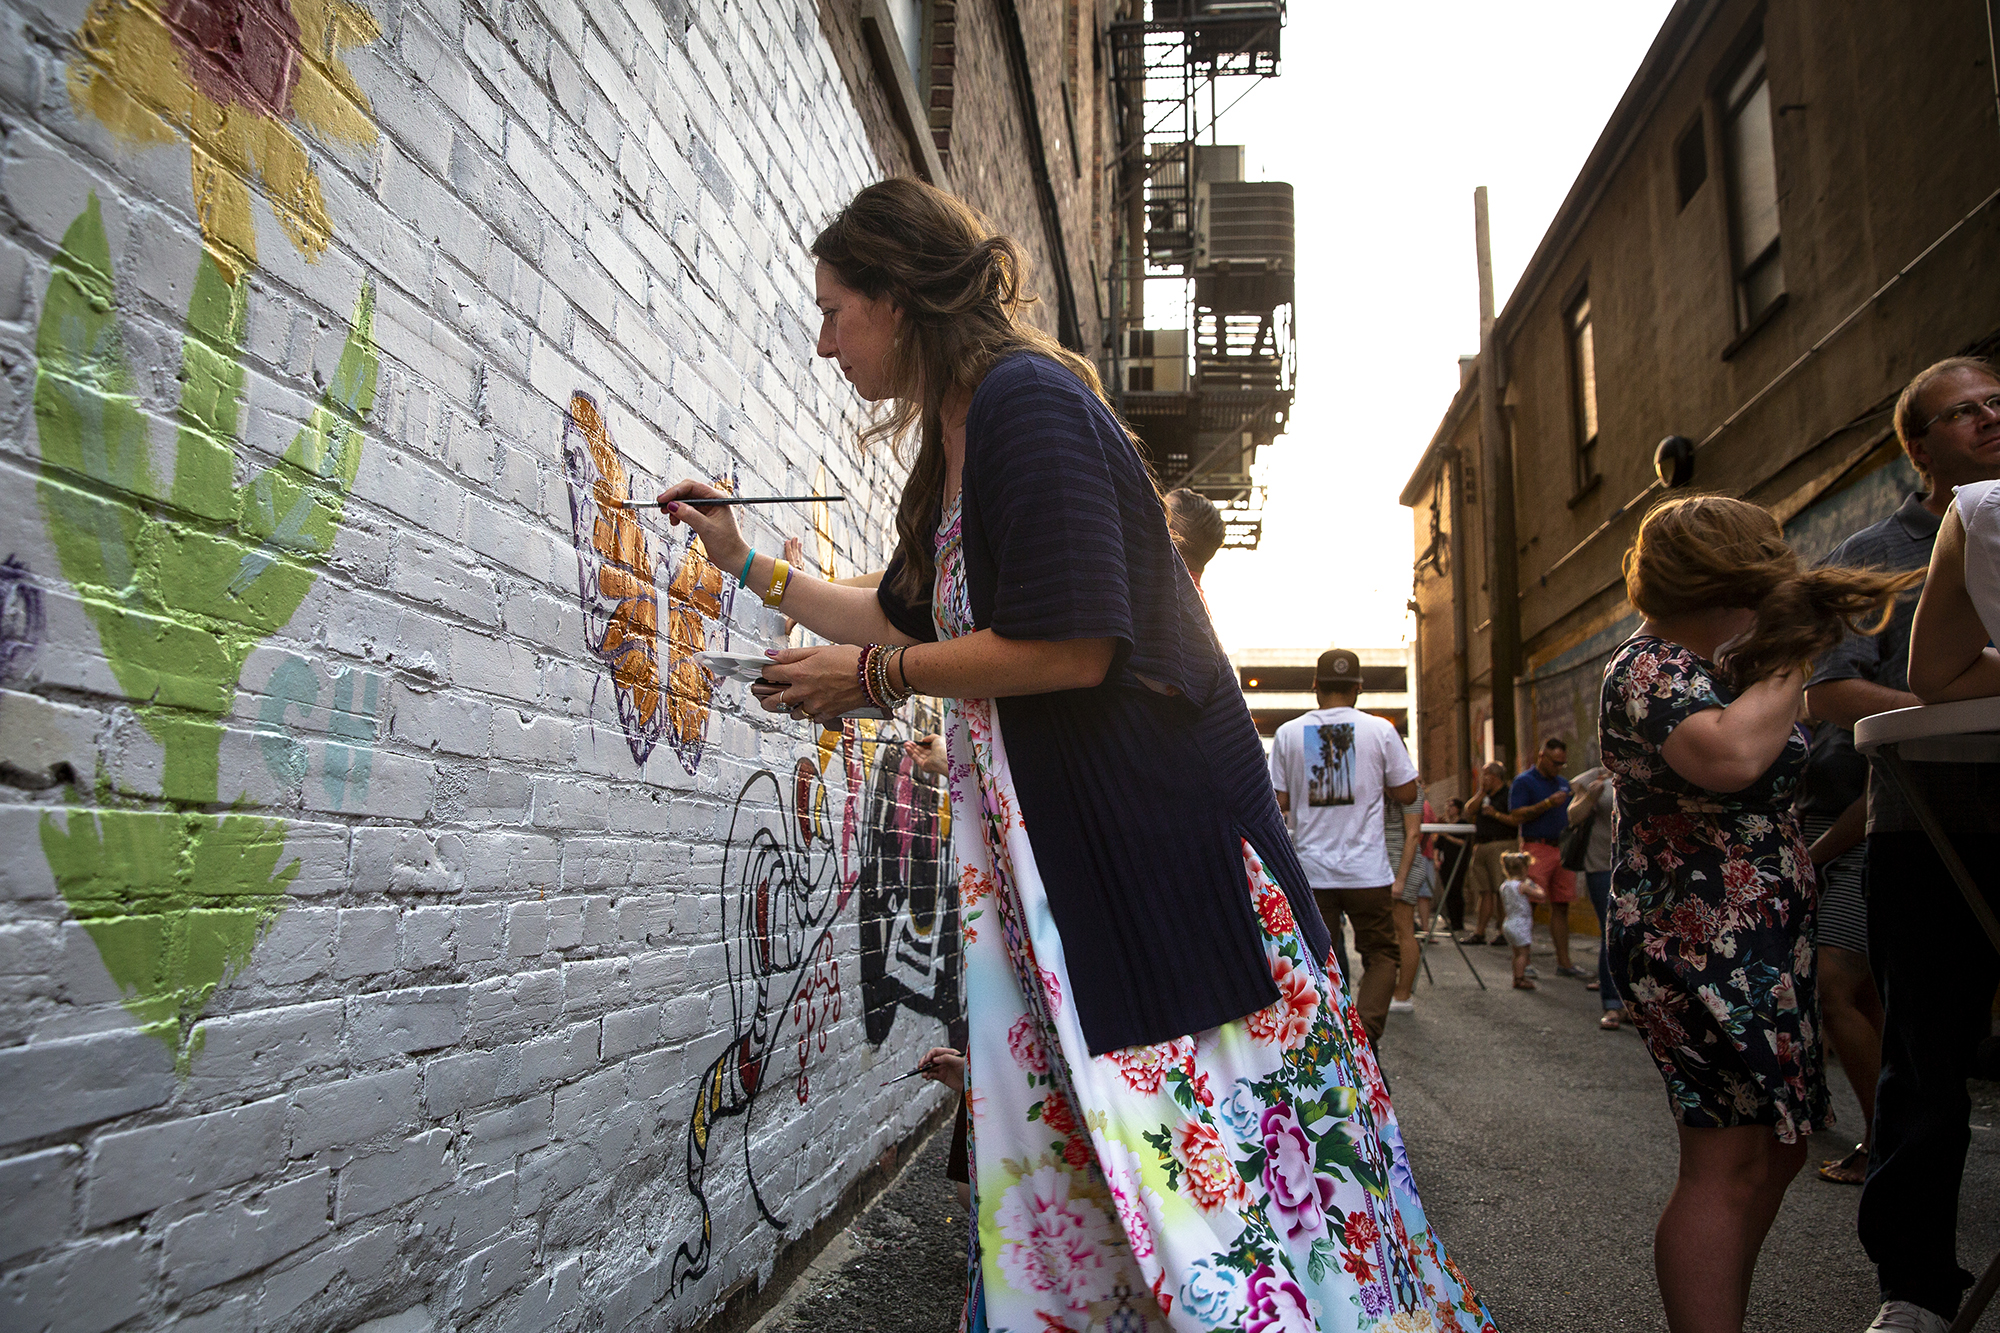 Anna Richie adds a butterfly to the community-created mural at Downtown Springfield Inc.'s Art Alley II pop-up event Thursday, Sept. 20, 2018 in the alley between Fourth and Fifth streets near the Old State Capitol Springfield, Ill. This year's featured muralists are Jen Santarelli, Jeff Curtis Williams and artists from DEMO Project. Proceeds from the event benefit future public art projects, part of DSIÕs program for downtown revitalization. [Rich Saal/The State Journal-Register]